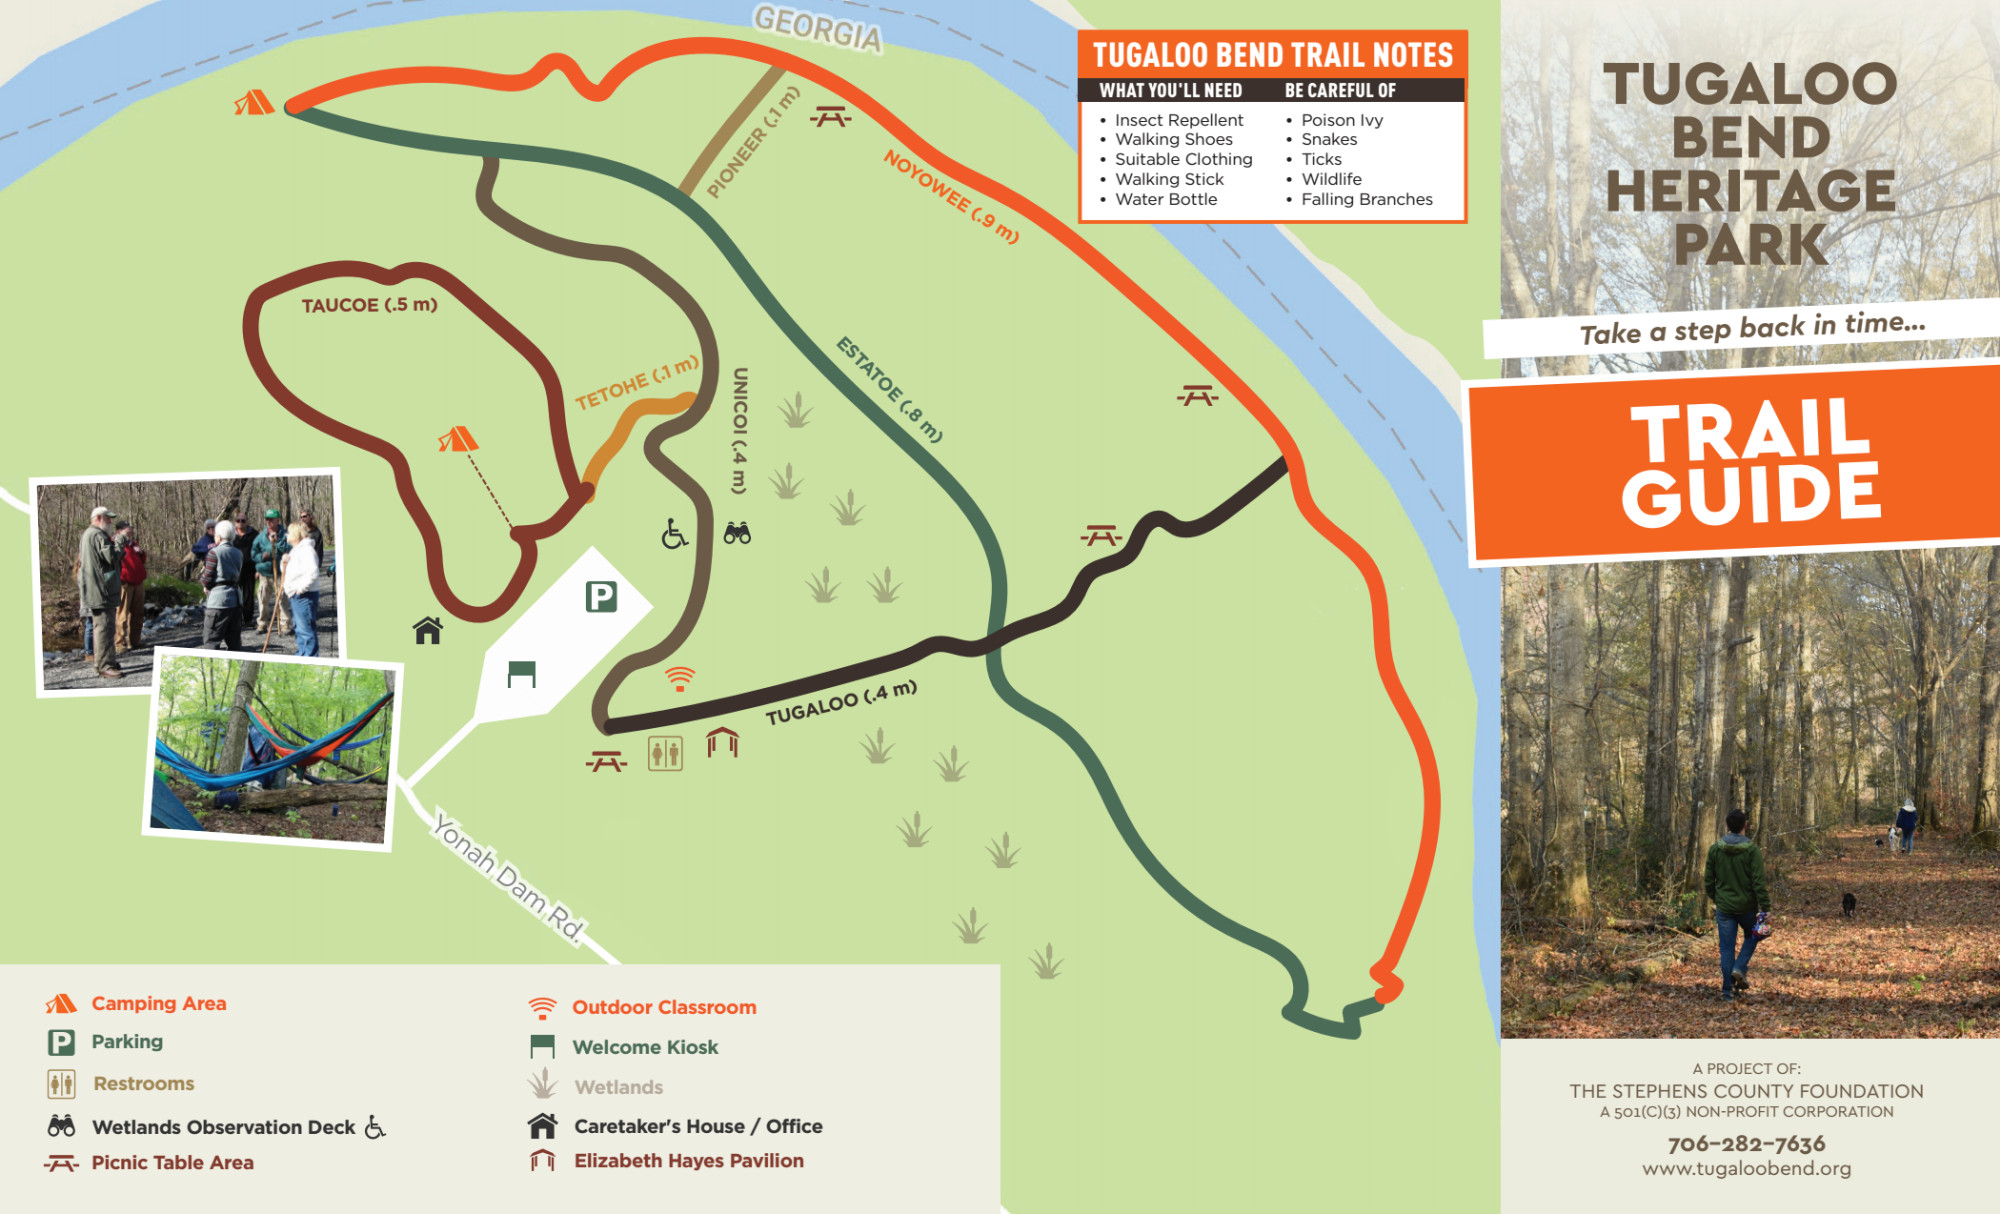 Tugaloo Bend Heritage Park Trail Guide